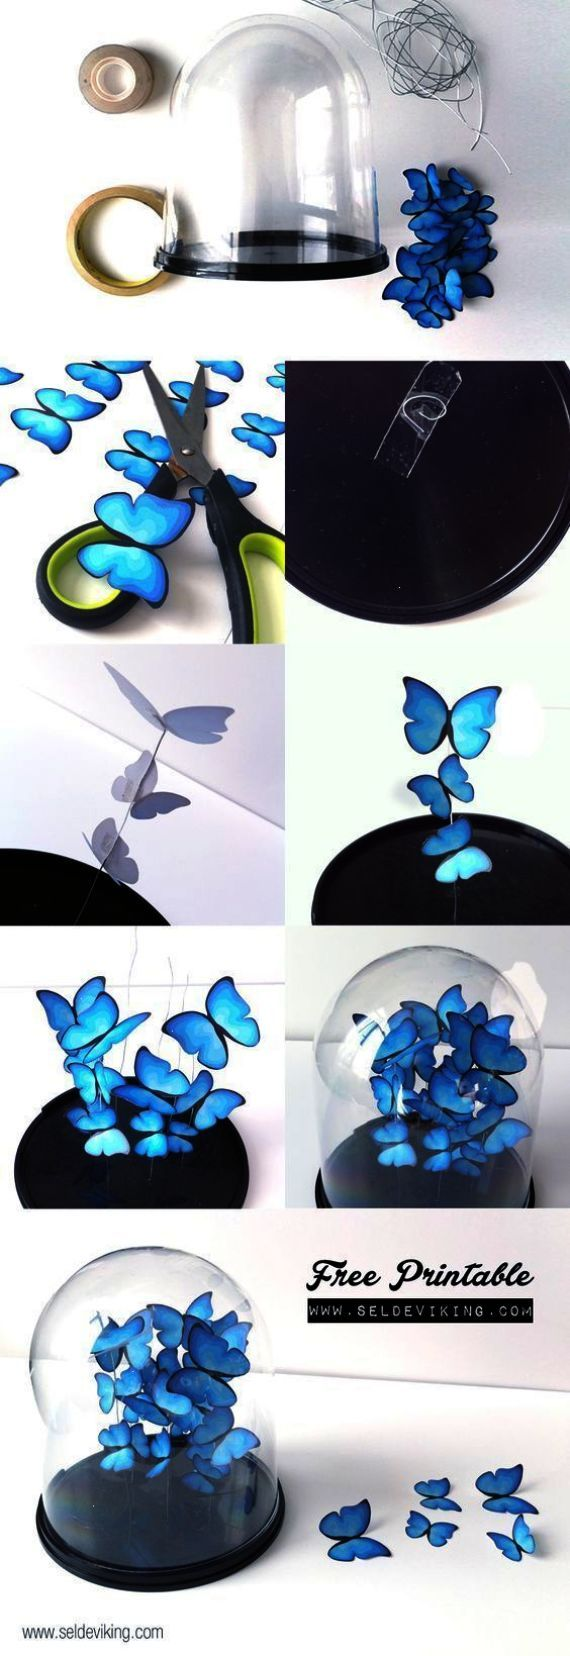 Cool turquoise room decor ideas diy butterfly decor fun aqua